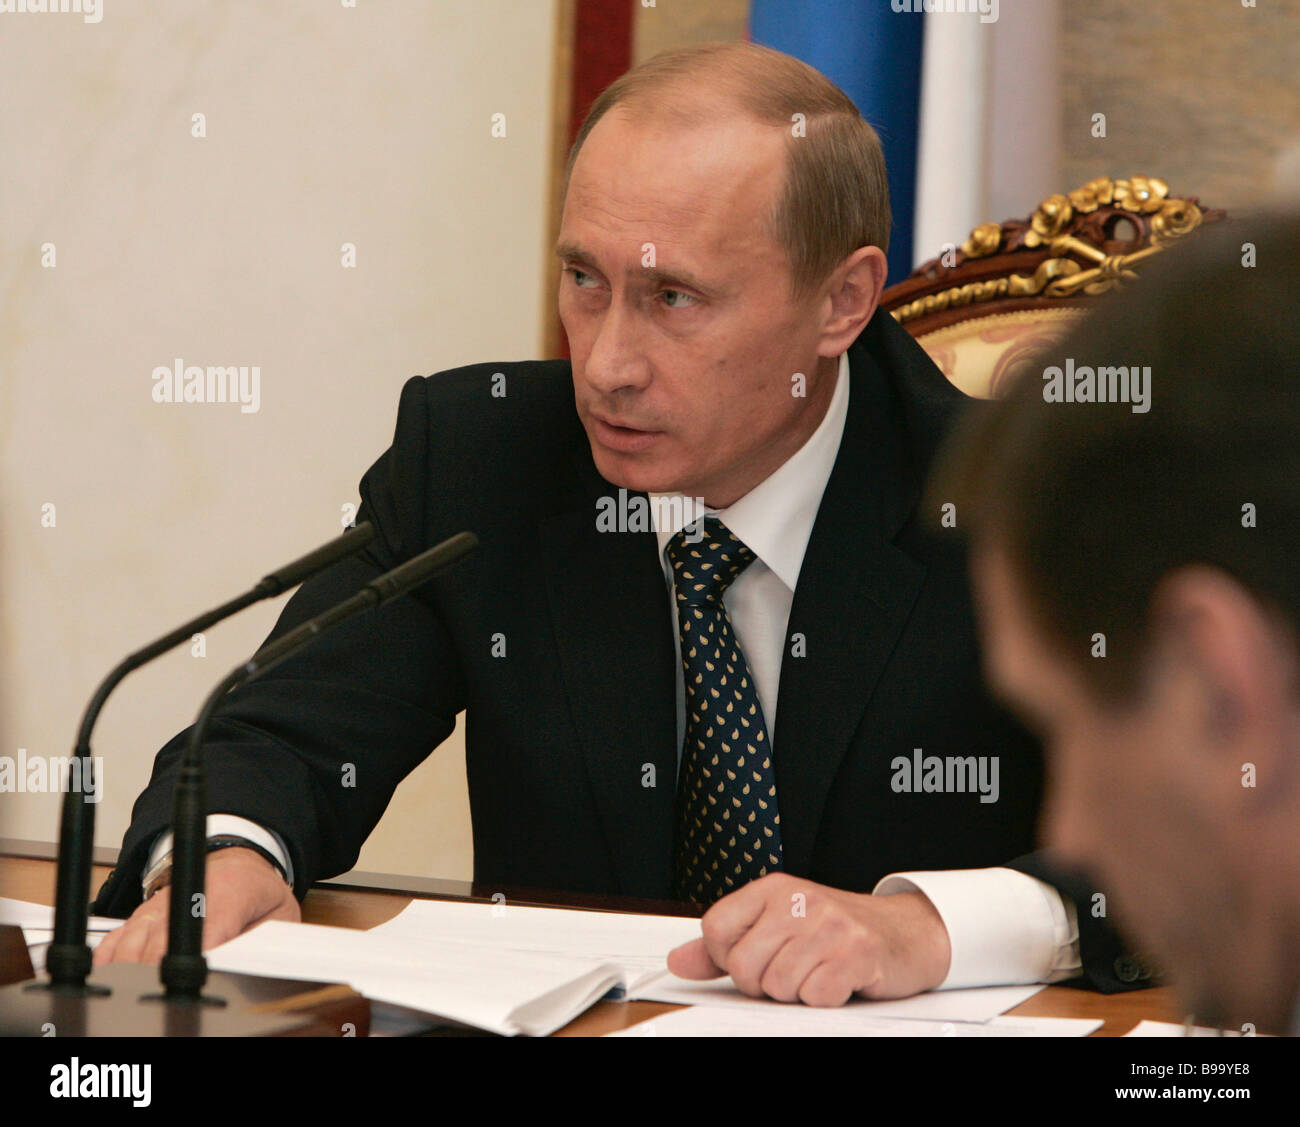 Russian President Vladimir Putin holding conference on economic issues in the Kremlin - Stock Image